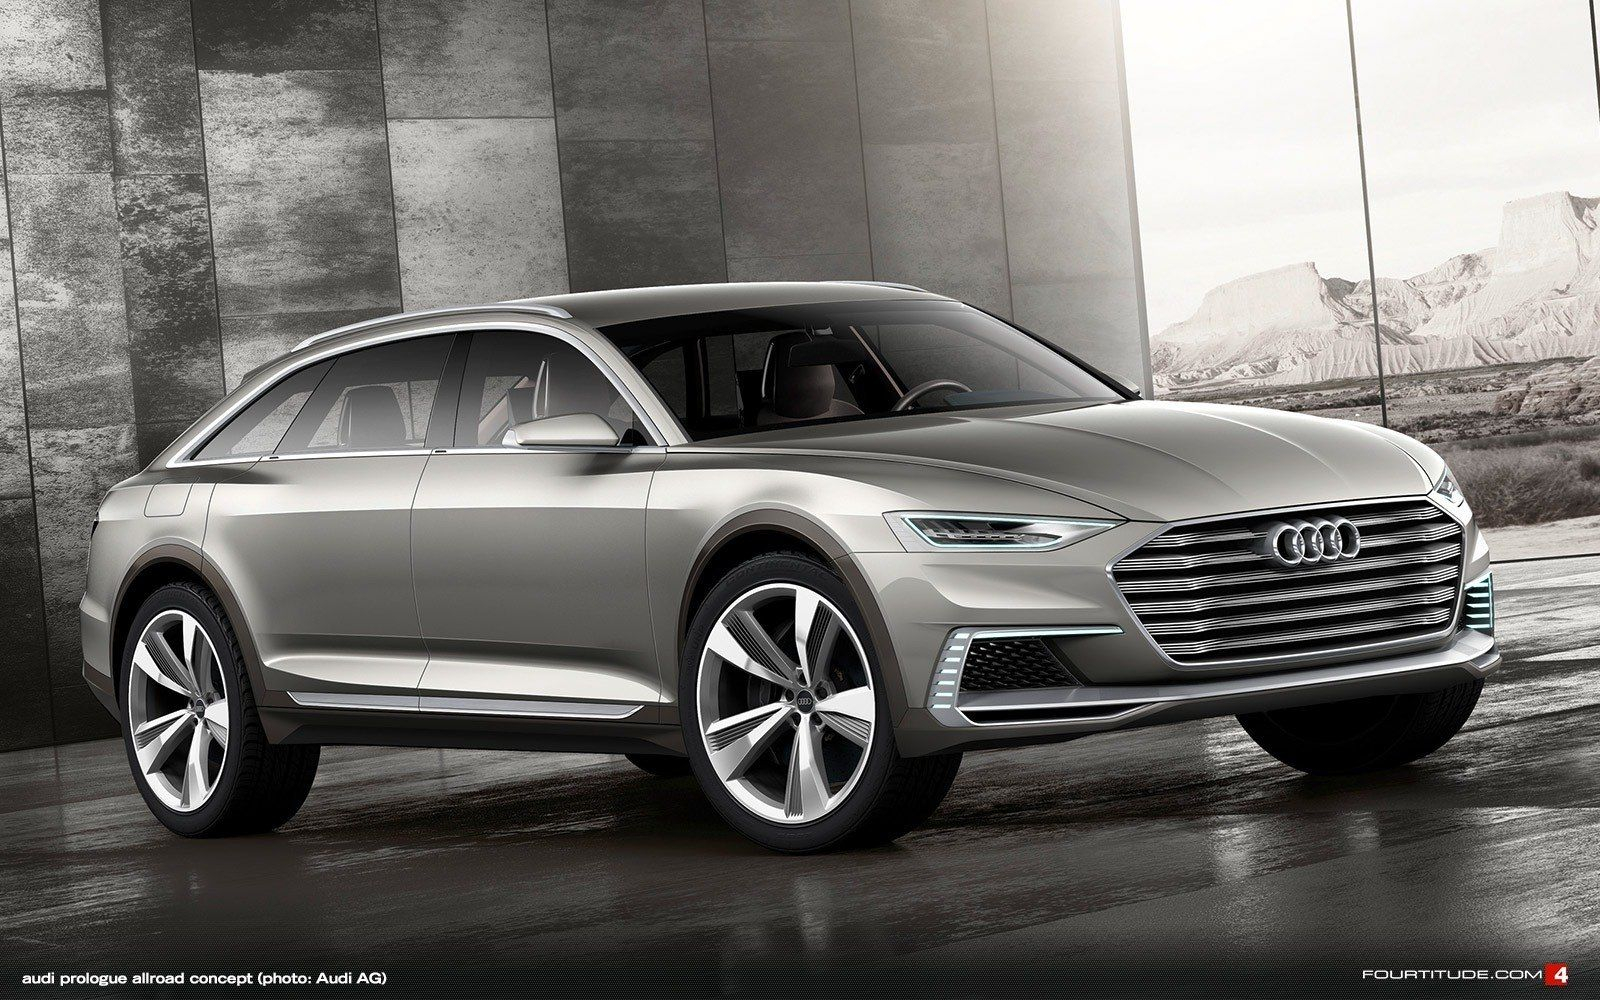 52 Best 2020 Audi A8 Price and Review